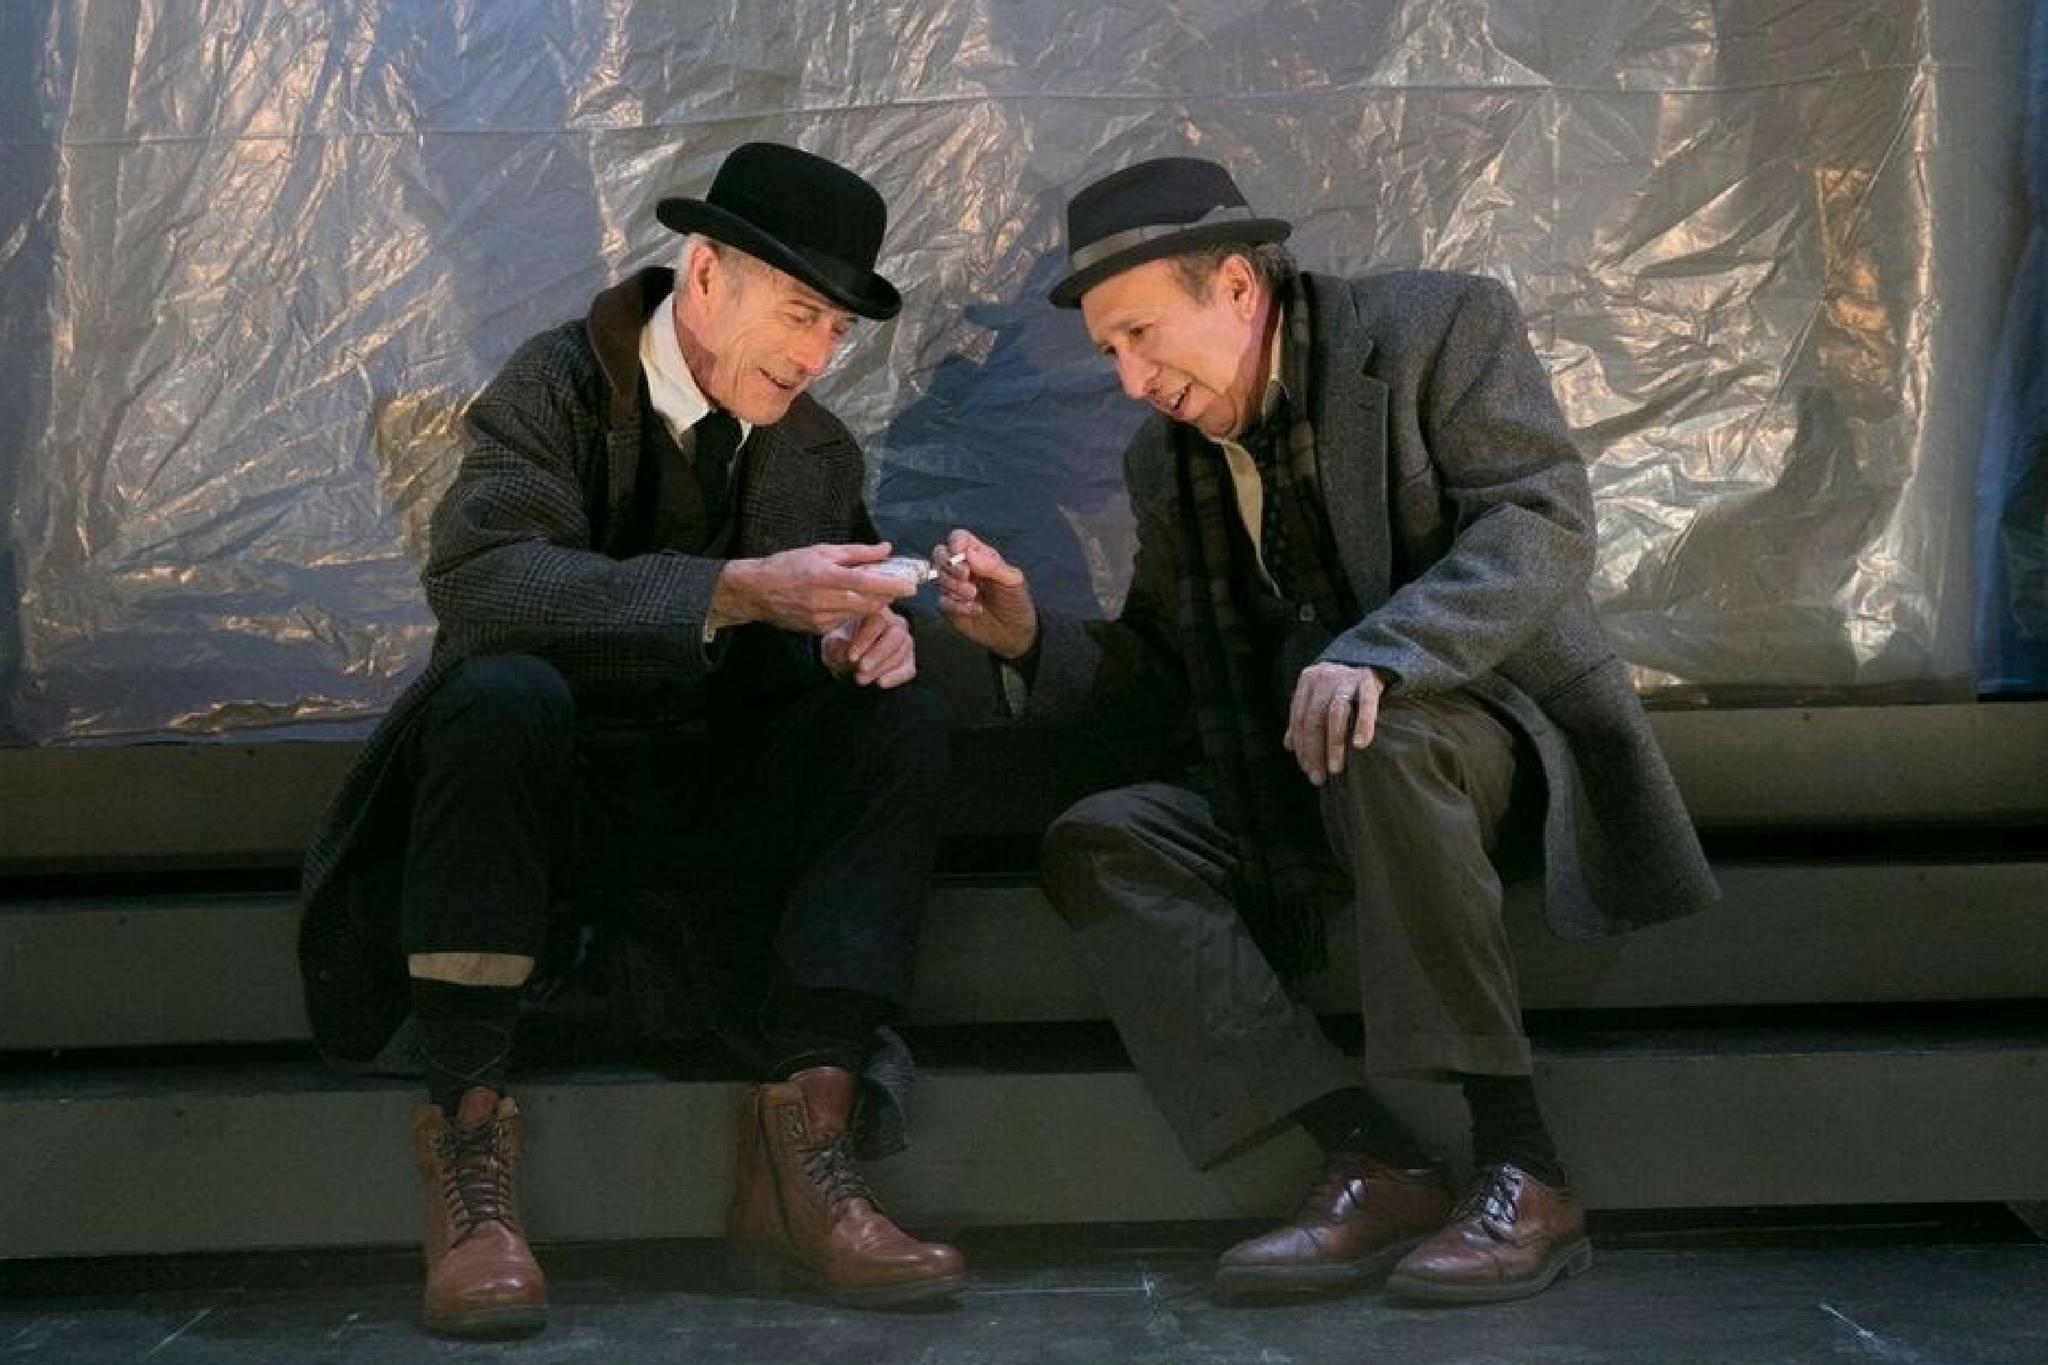 Will Lyman (Cream) and Ken Baltin (Gorman) in The Old Tune, part of Beckett in Brief, 2017-Photo by Evgenia Eliseeva